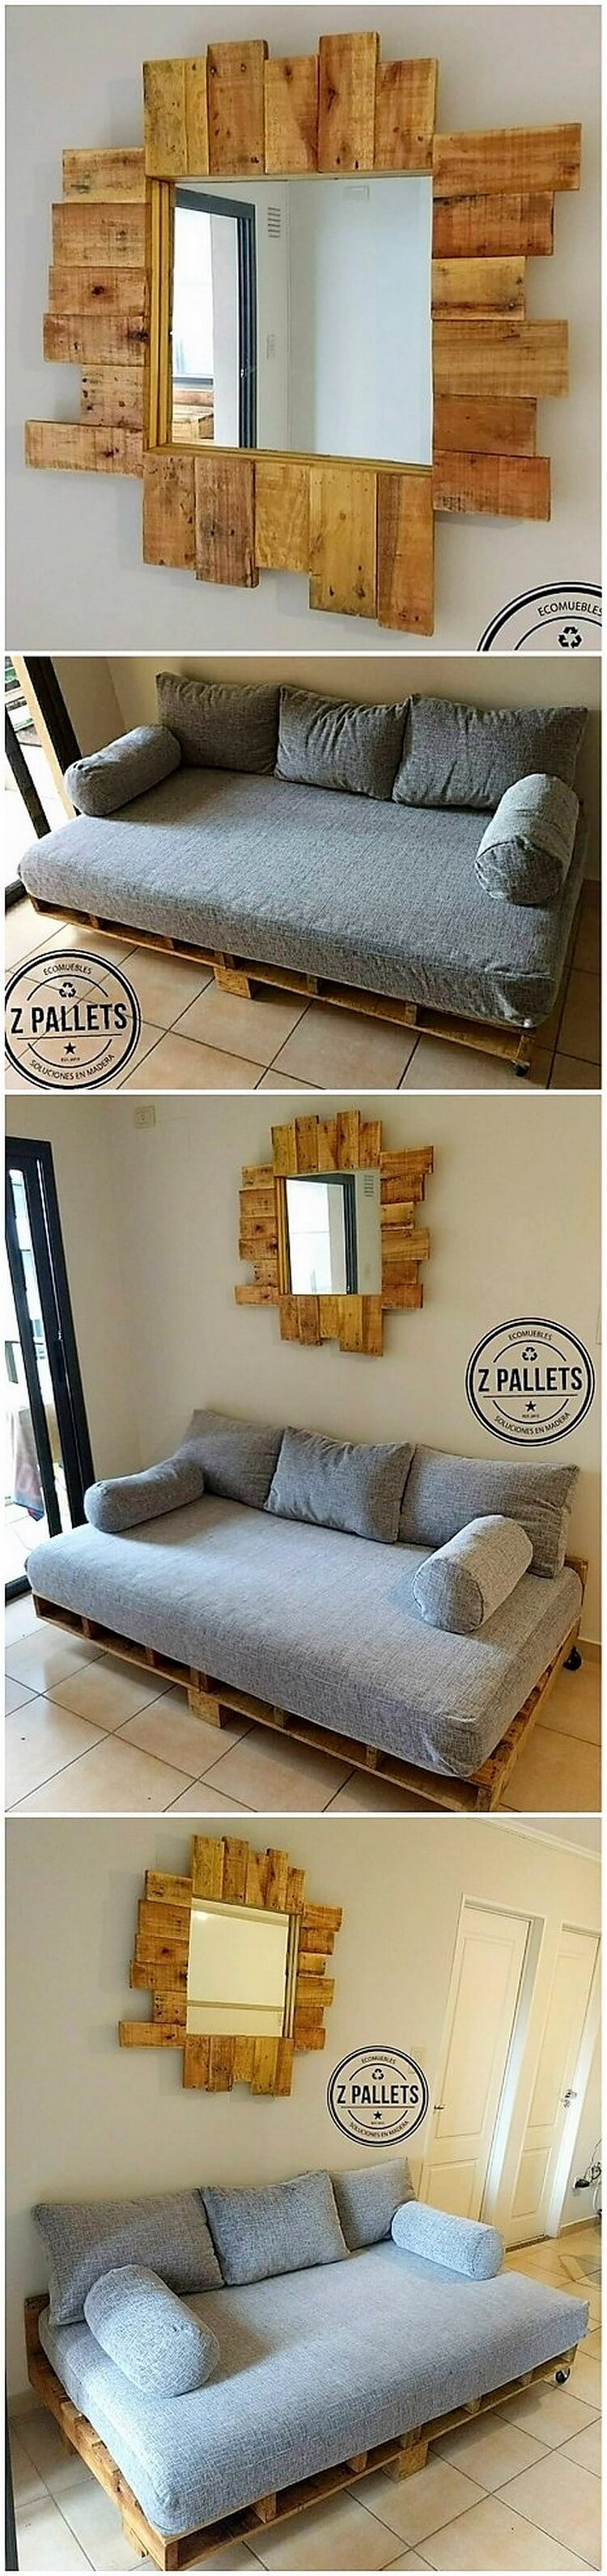 Pallet Mirror Frame and Couch